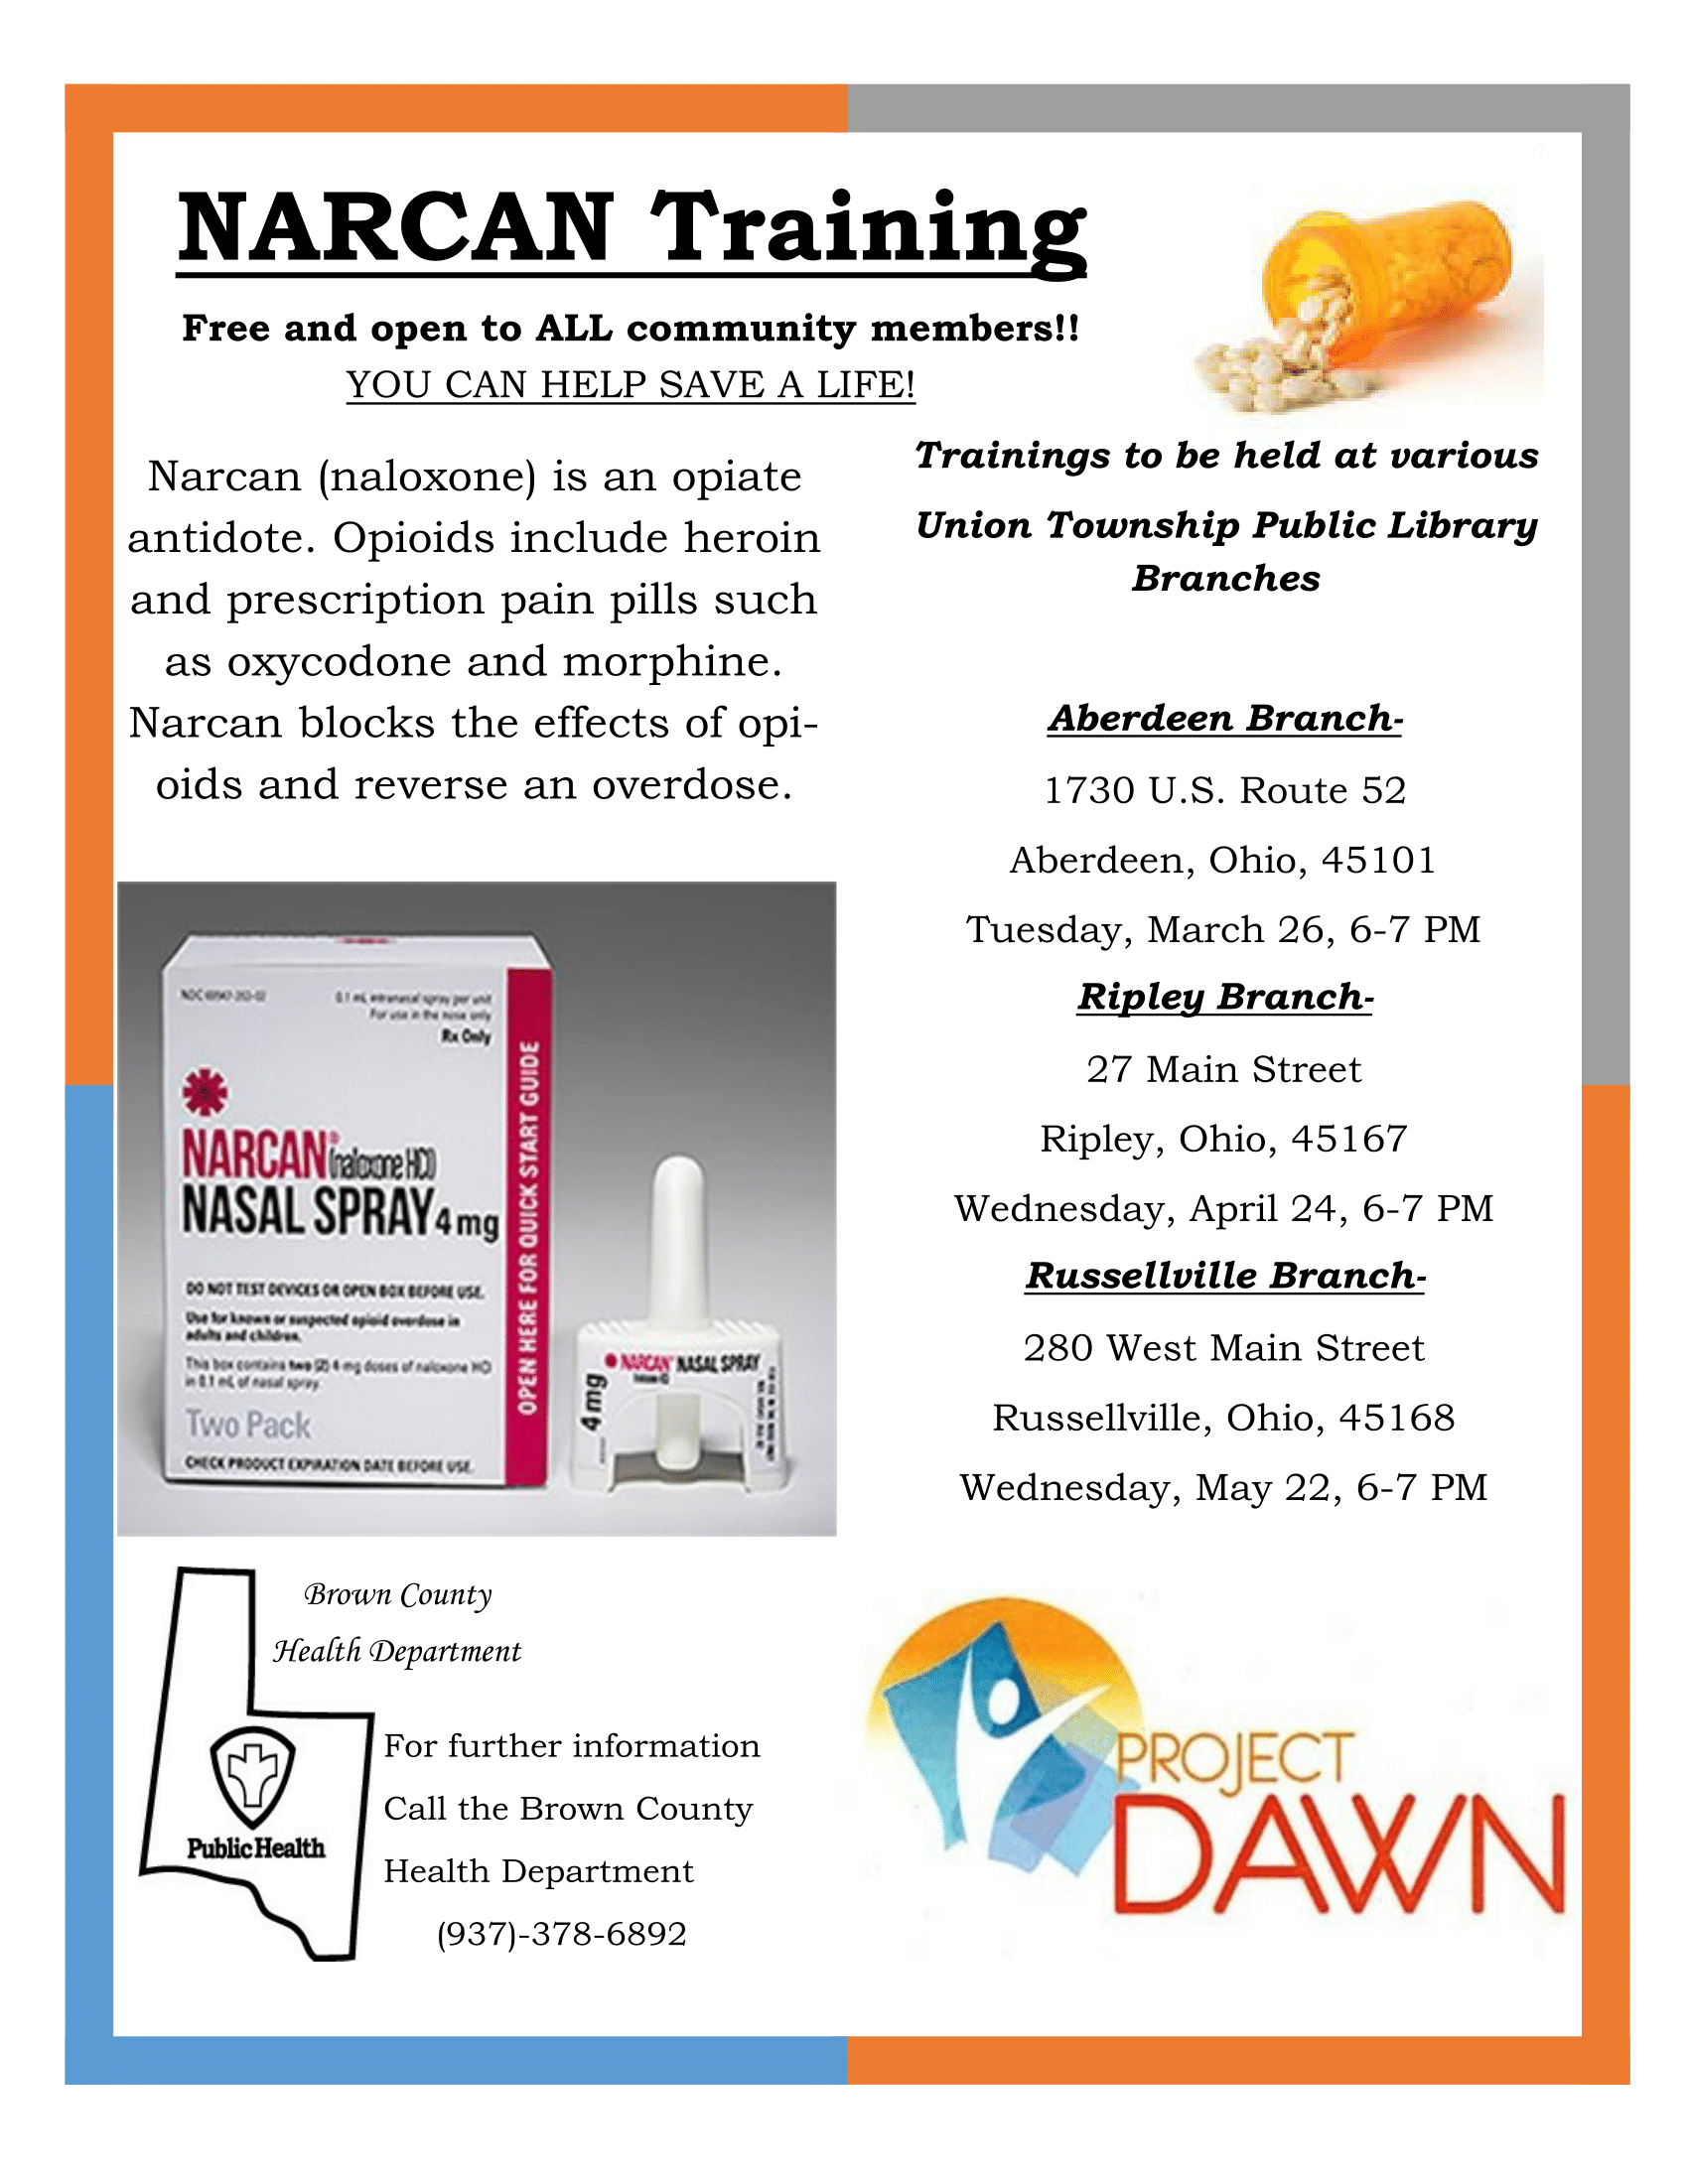 Narcan Training - Aberdeen Branch